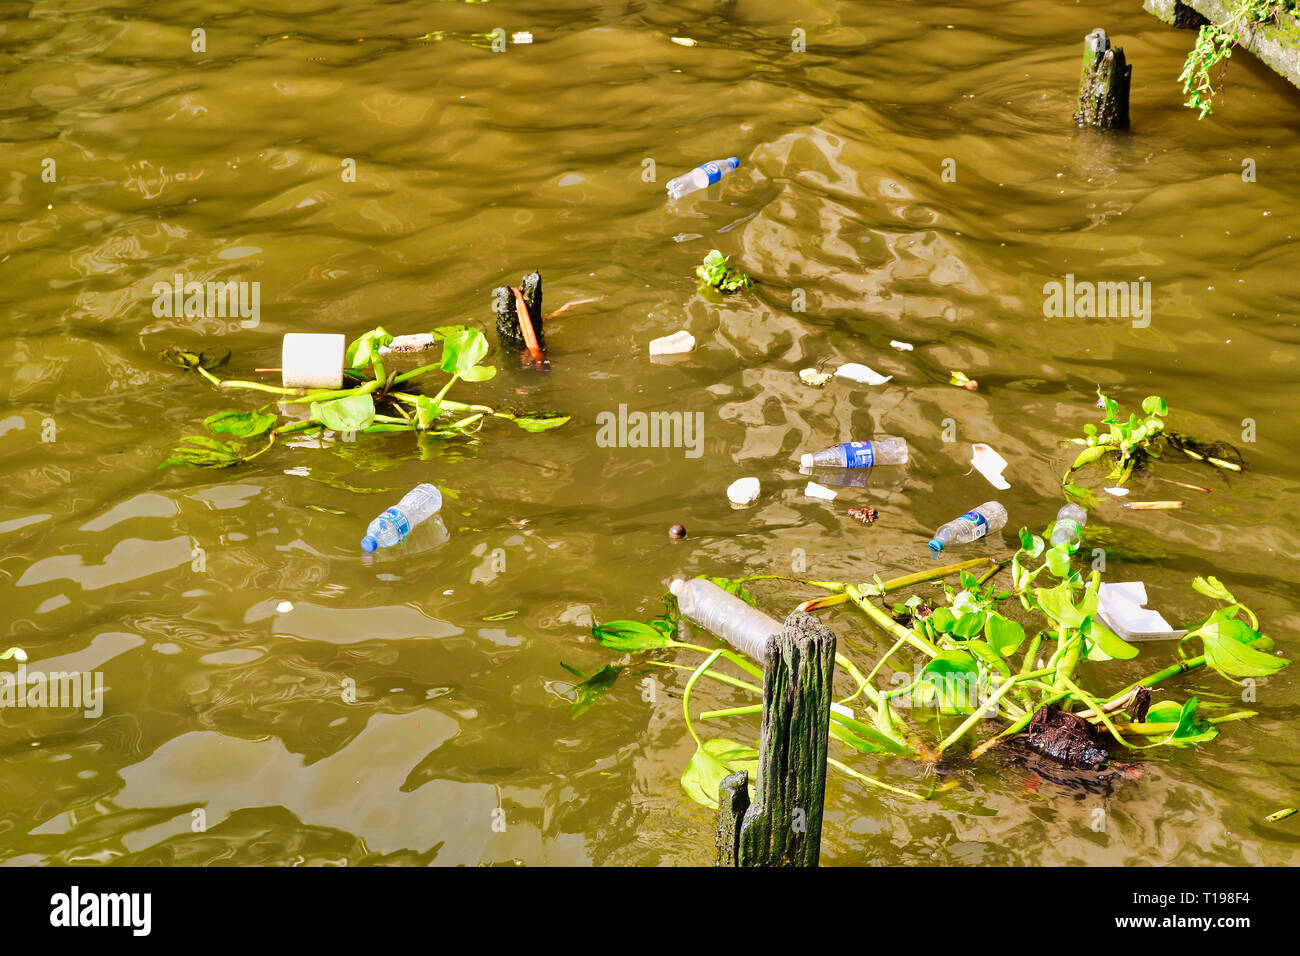 This unique photo shows how the water is polluted with plastic garbage in the bangkok river Mae Nam Chao Phraya - Stock Image